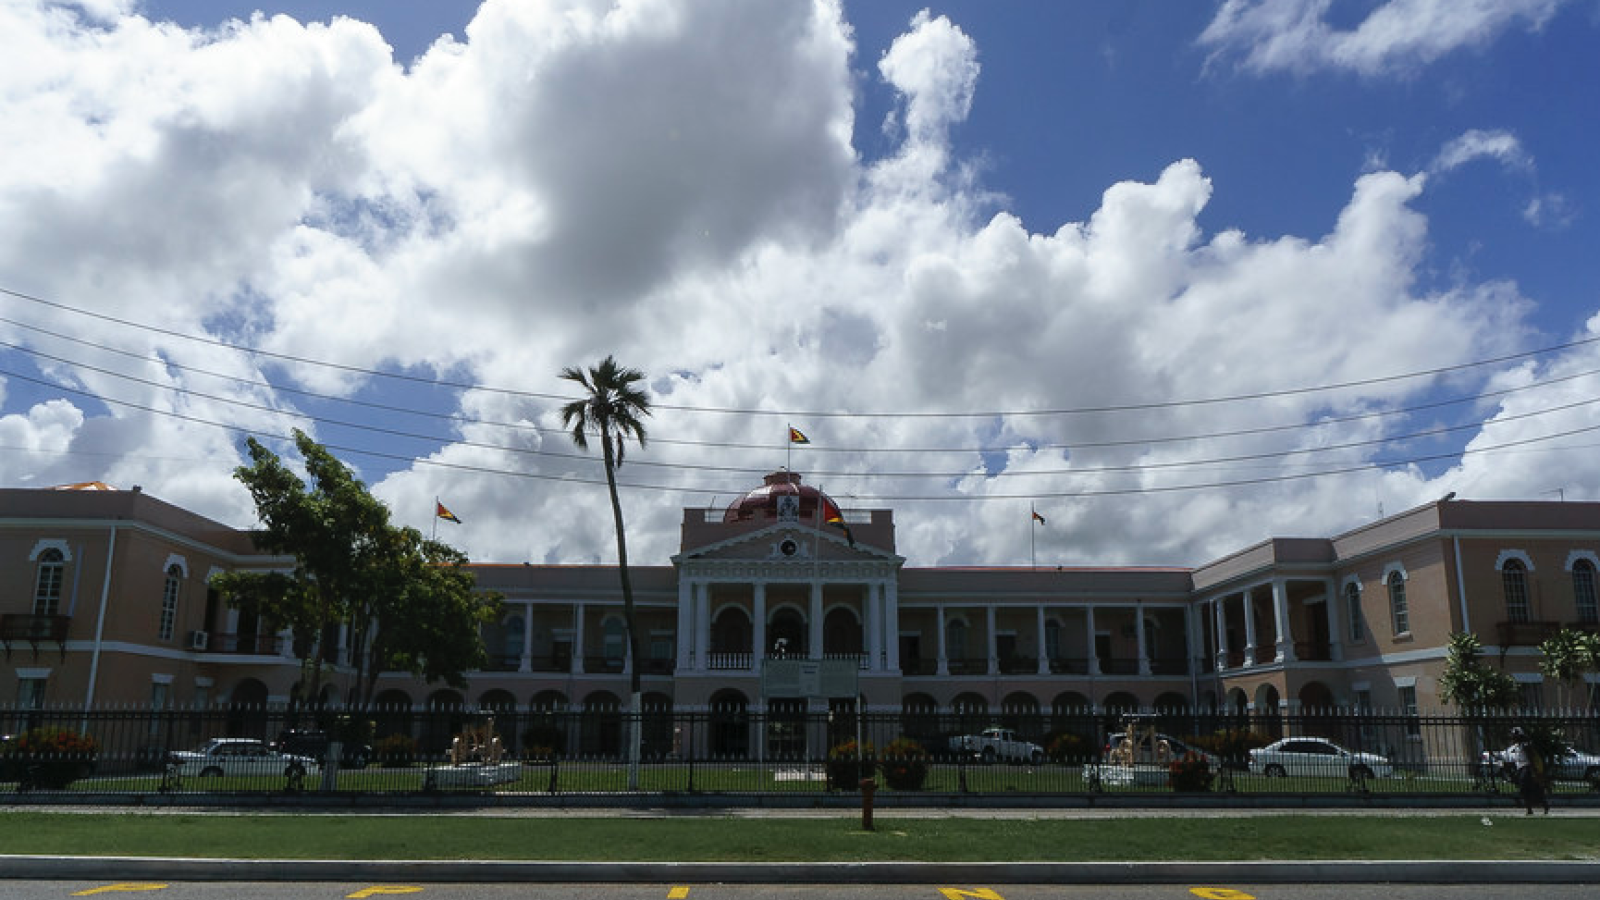 A picture of the front of the national parliament building in Georgetown, Guyana.